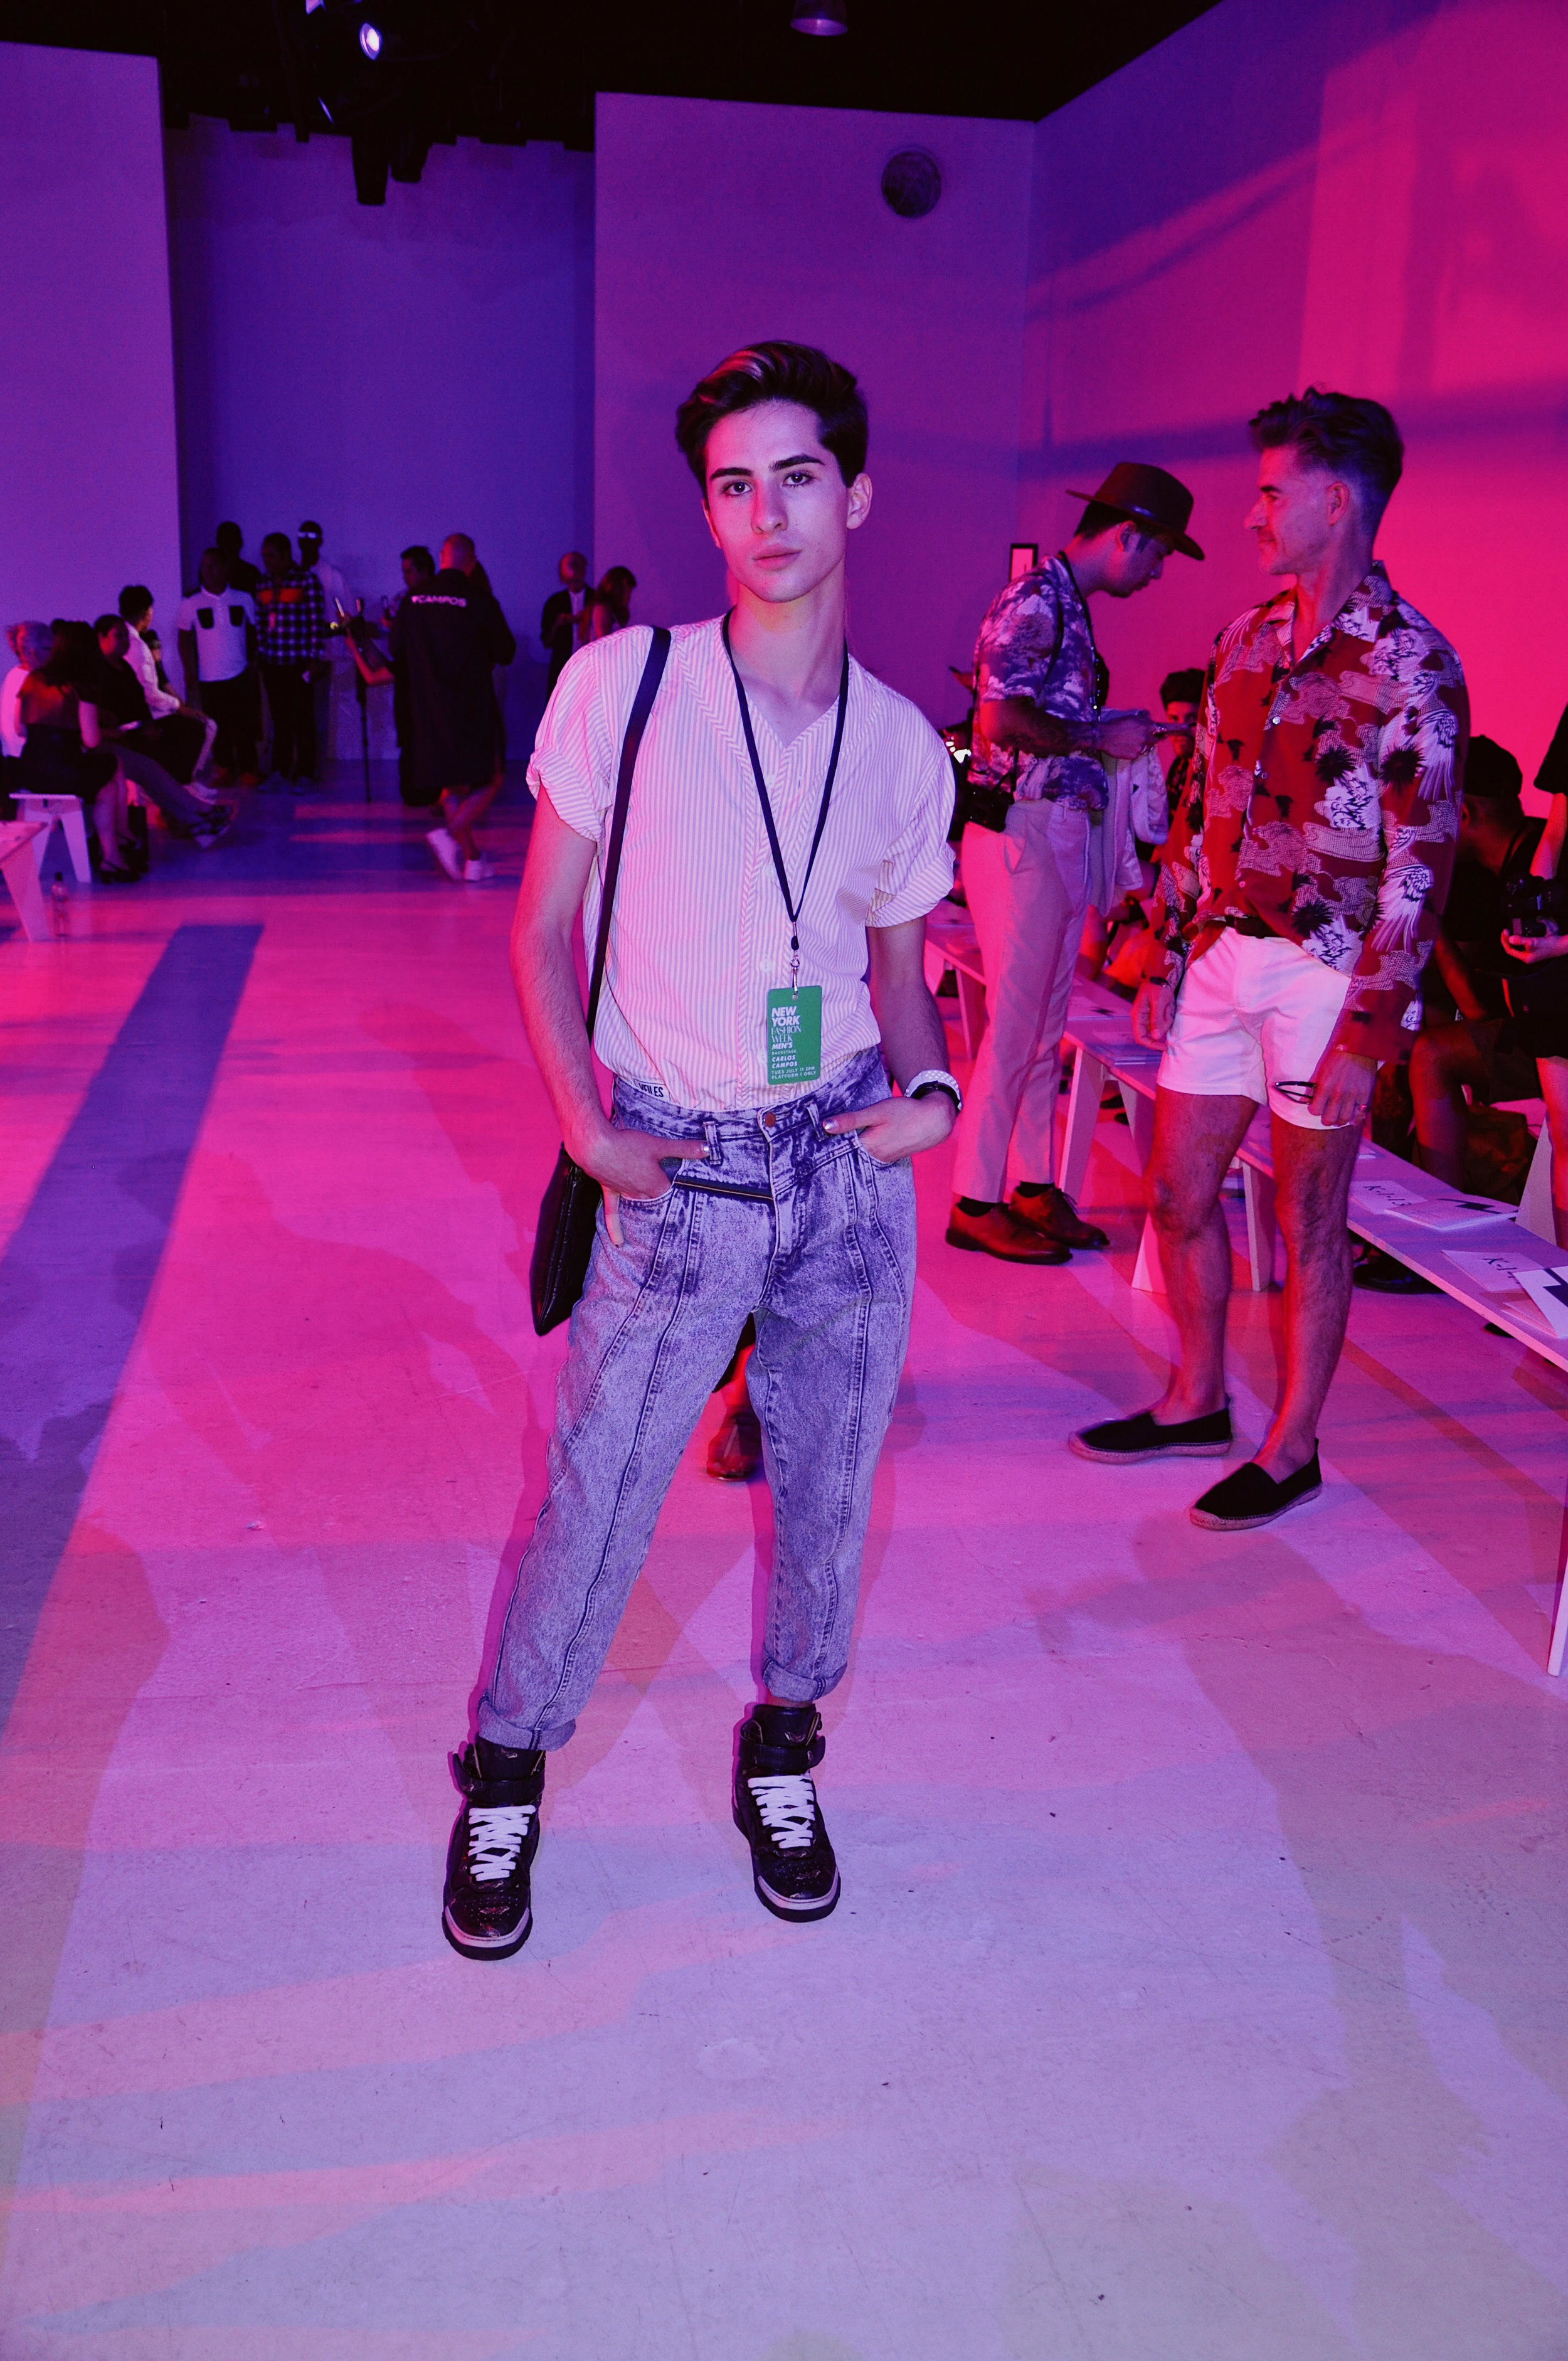 Prior to showtime, sporting my NYFWM Day 2 look.